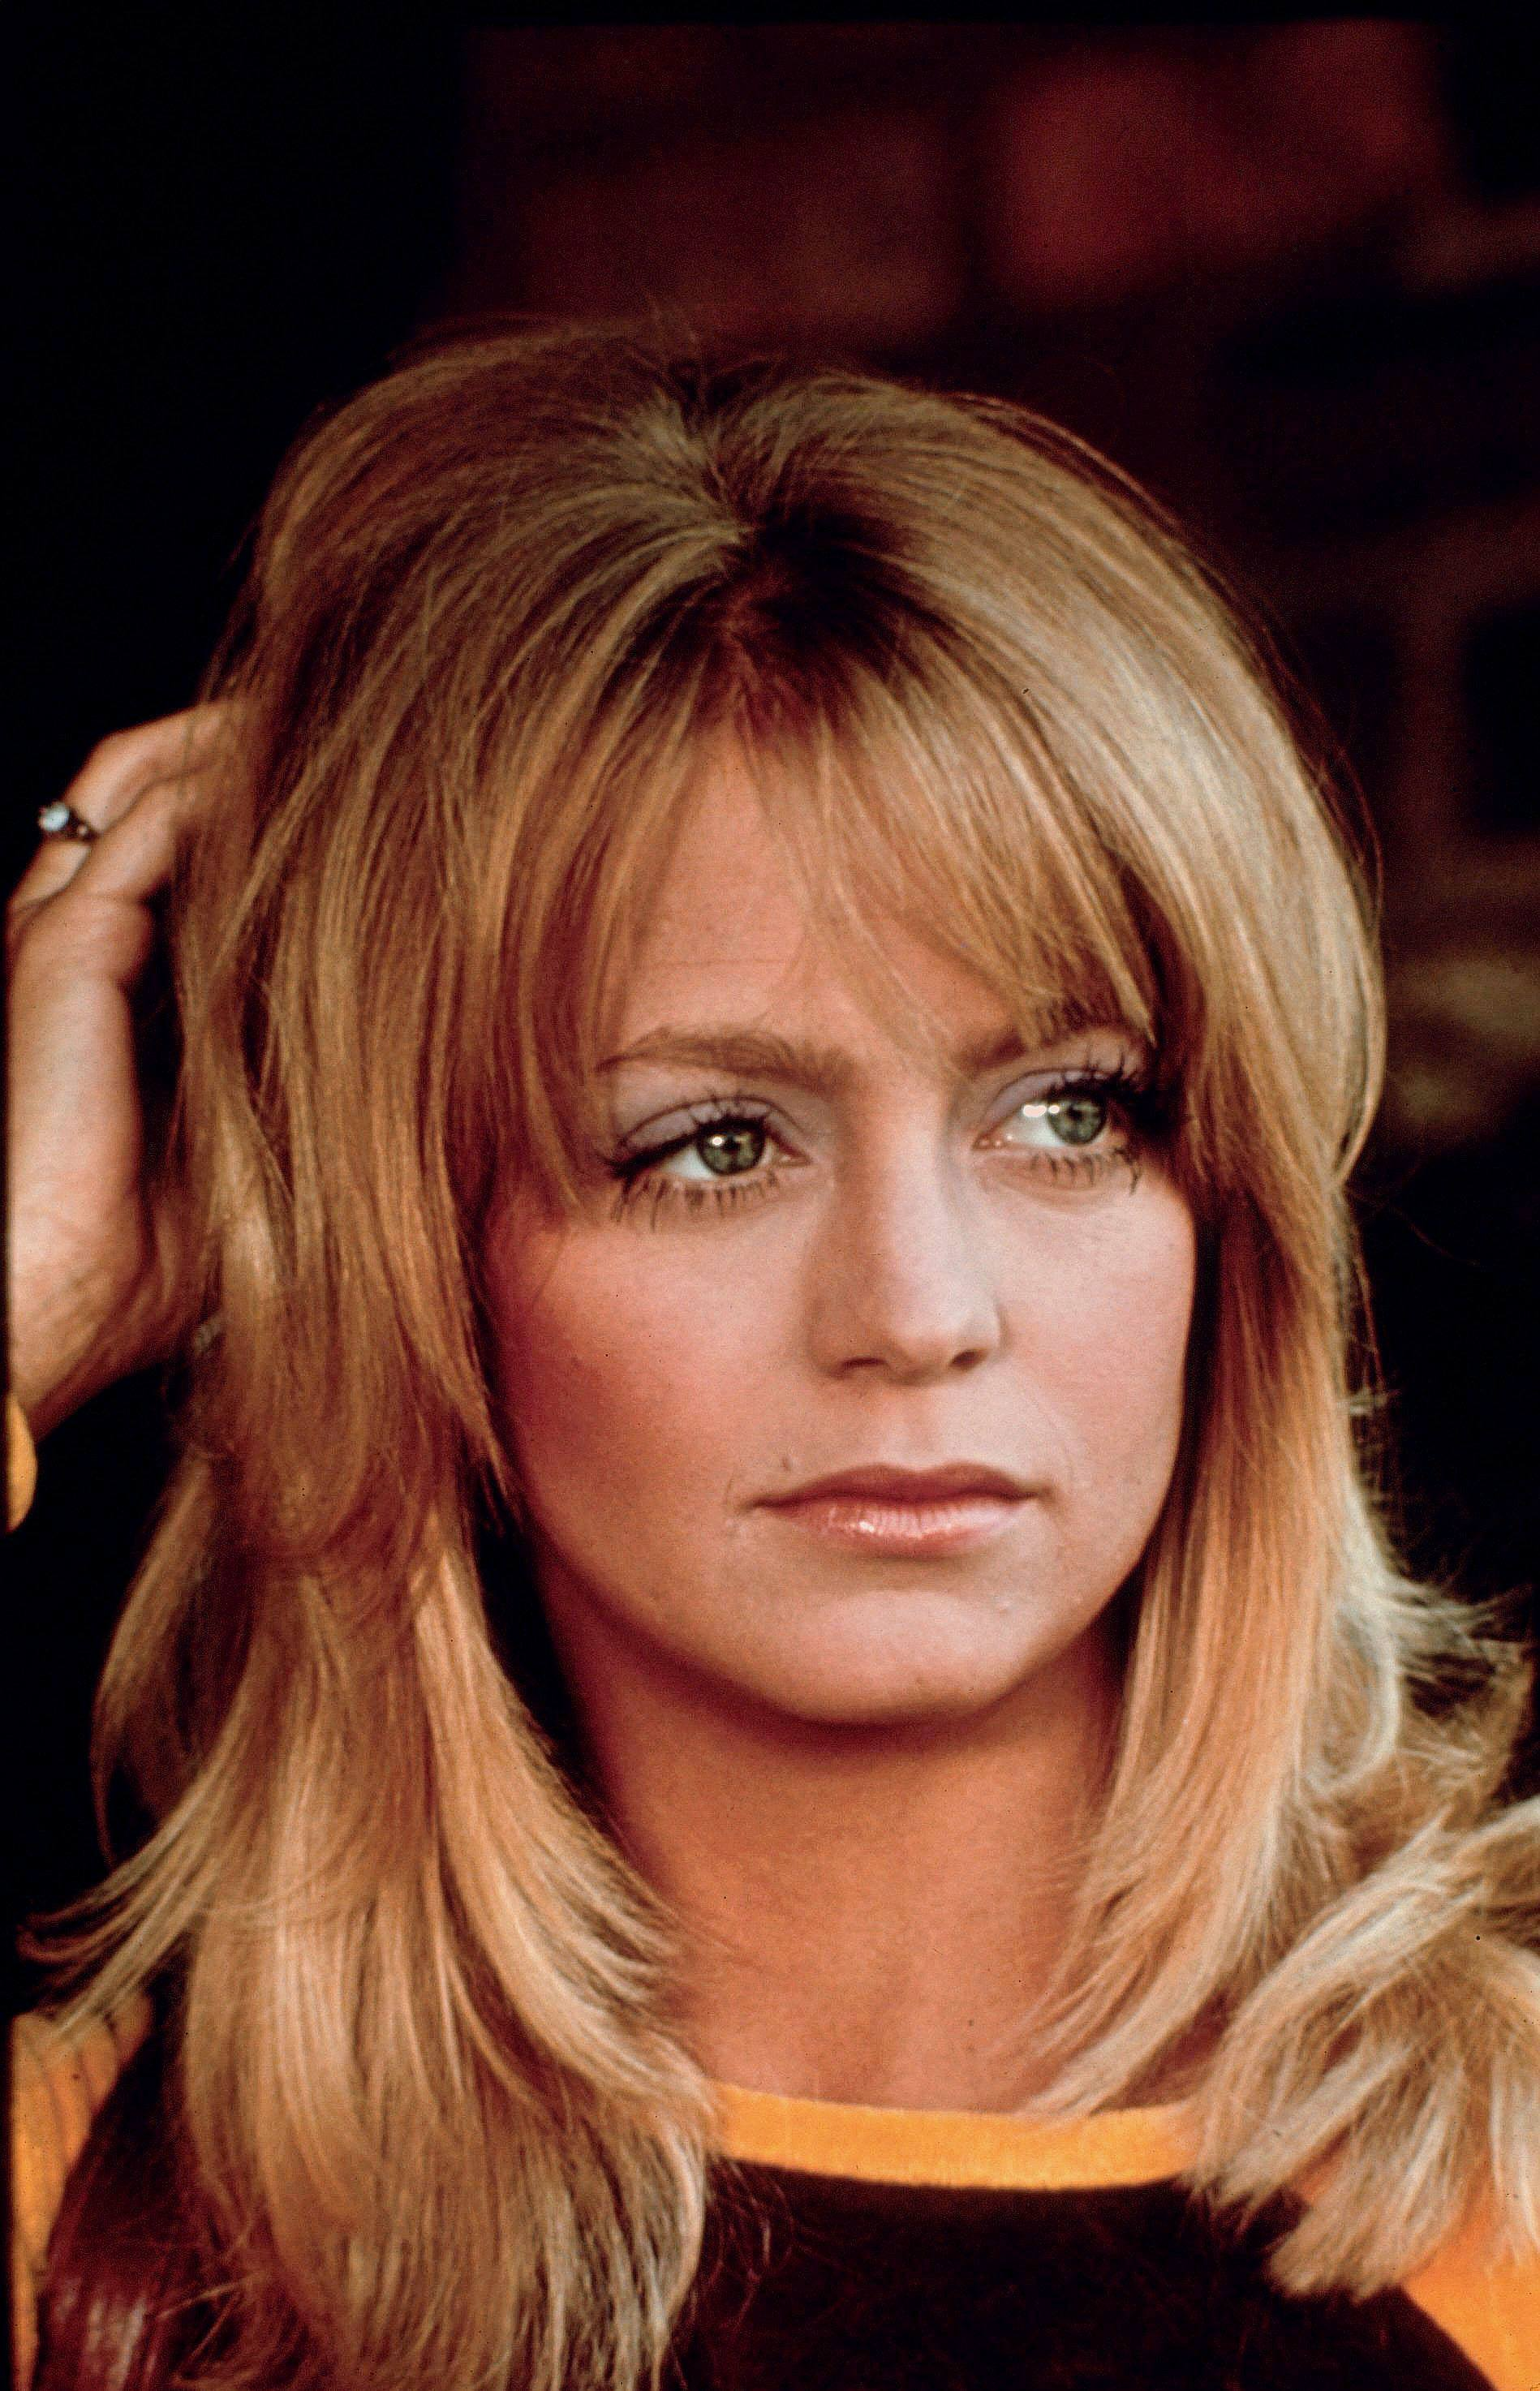 70S hairstyles: Goldie Hawn medium straight golden blonde hair with sweeping bangs